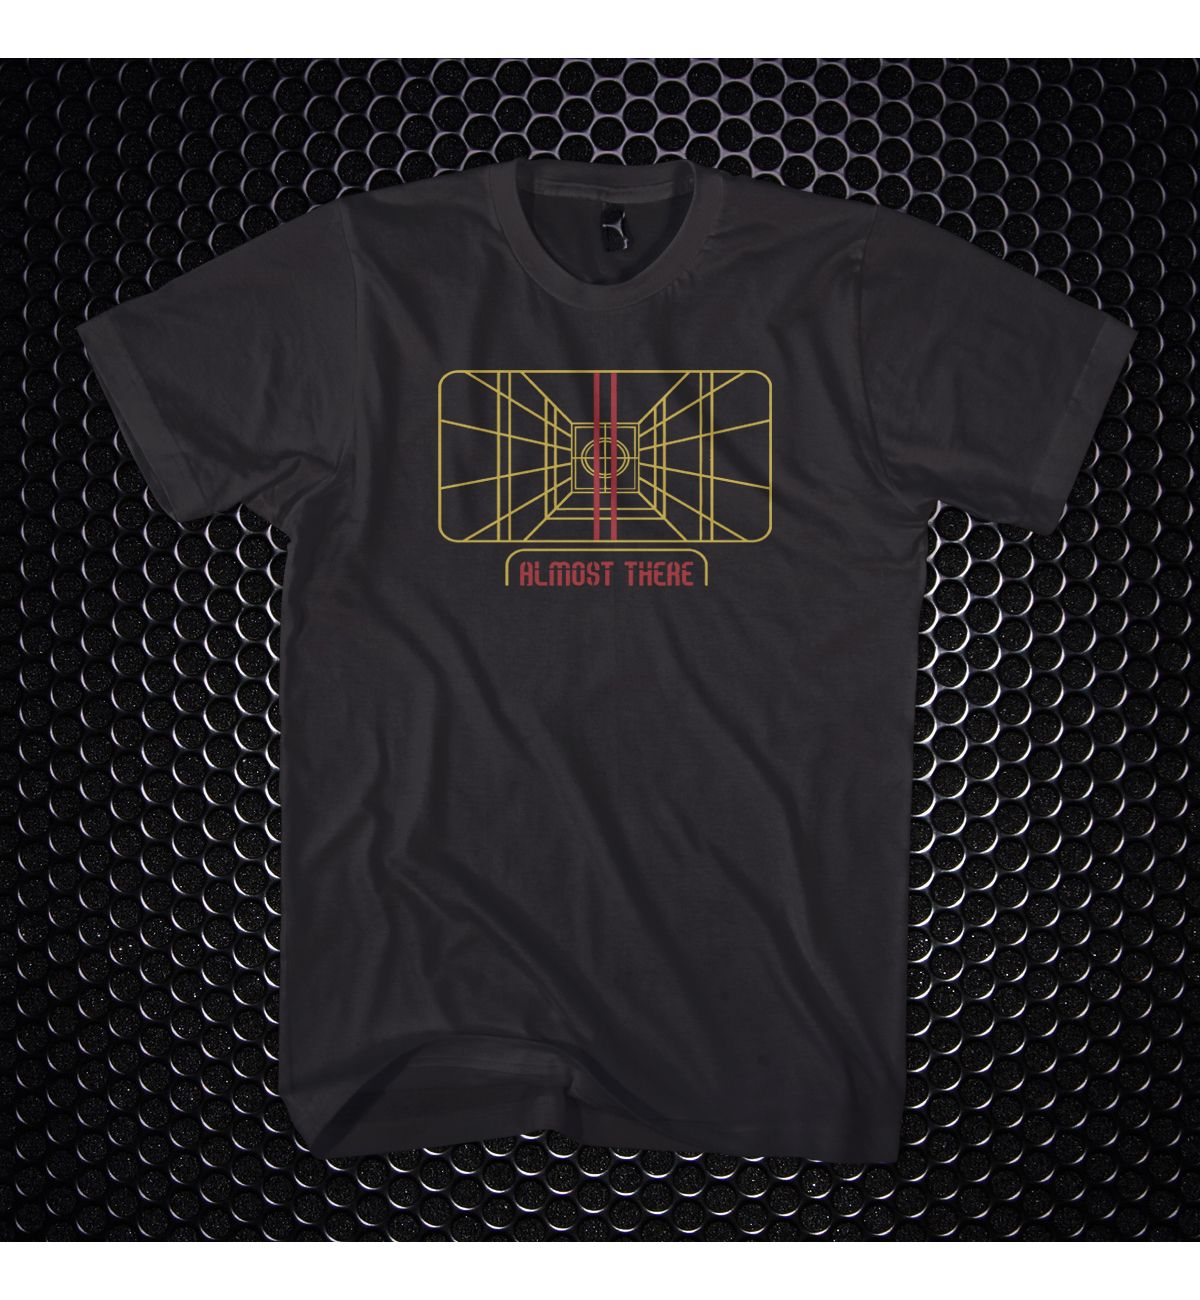 Black t shirt target - Black T Shirt Target Star Wars Almost There Millennium Falcon On Target T Shirt In